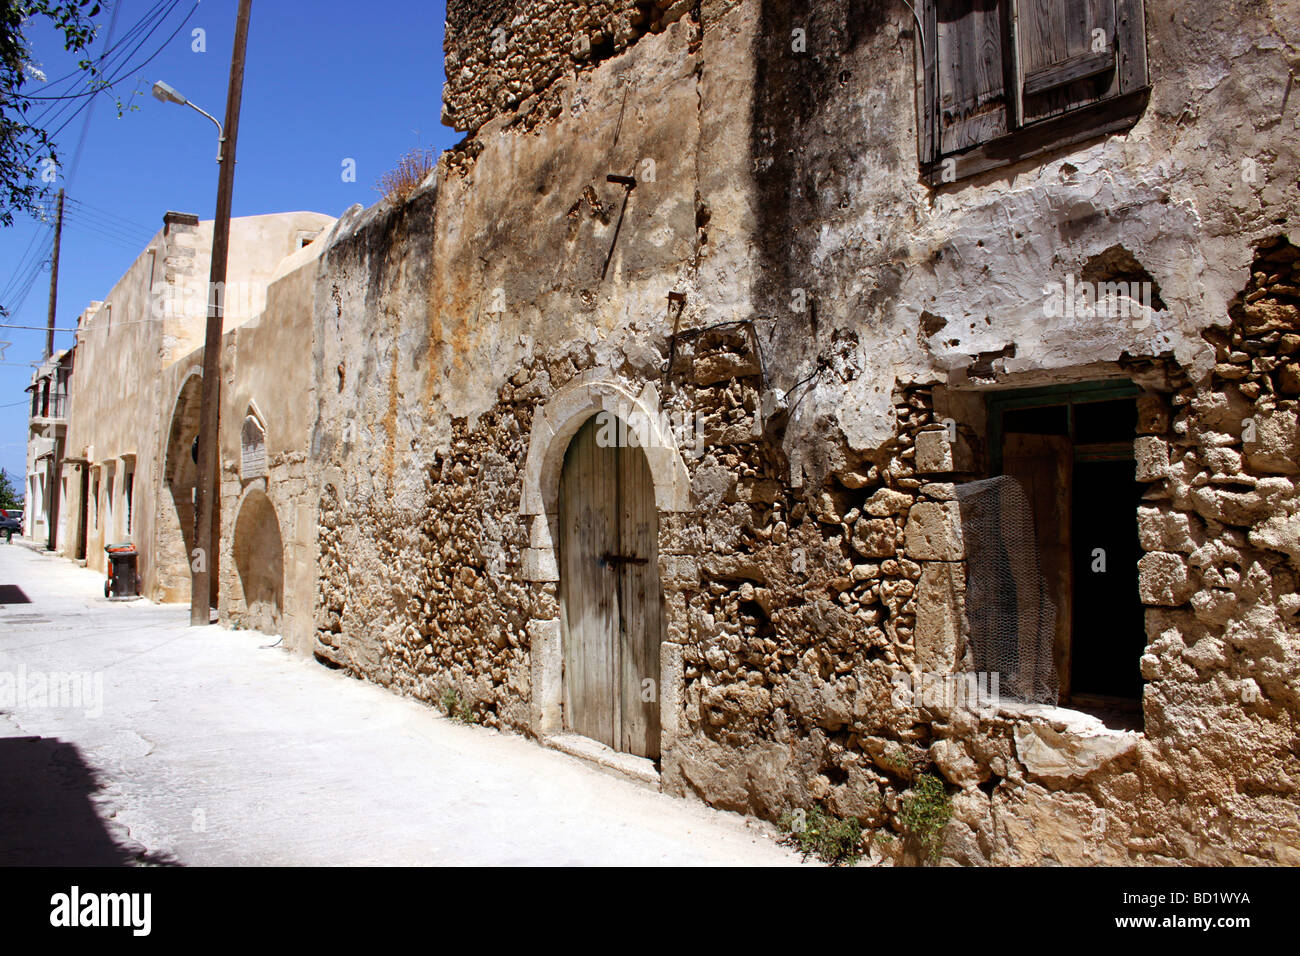 A DERELICT BUILDING IN THE BACKSTREETS OF RETHYMNON ON THE GREEK ISLAND OF CRETE. - Stock Image